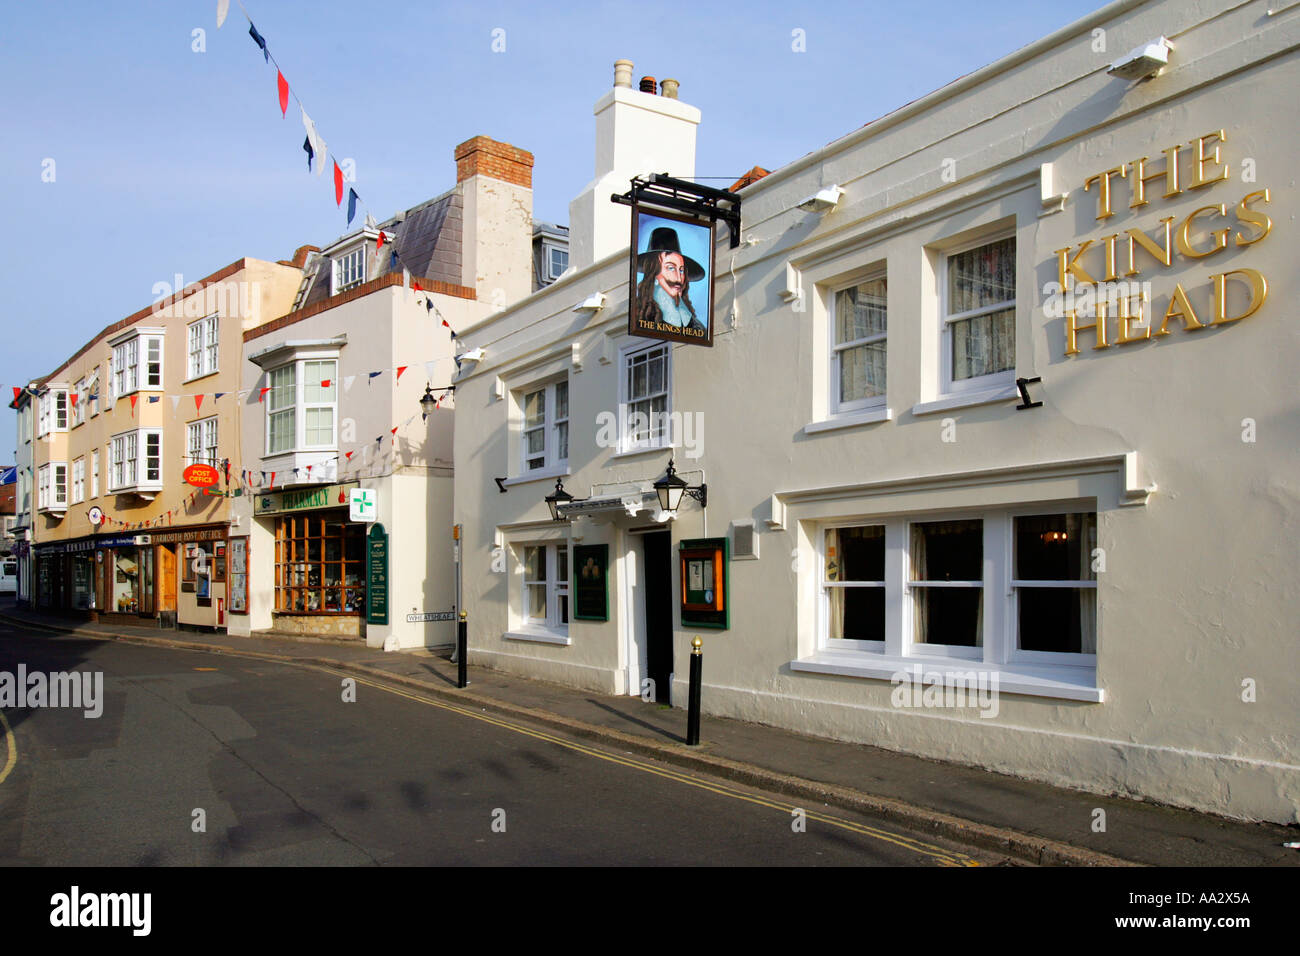 Kings Head Pub Yarmouth Isle of Wight England UK - Stock Image